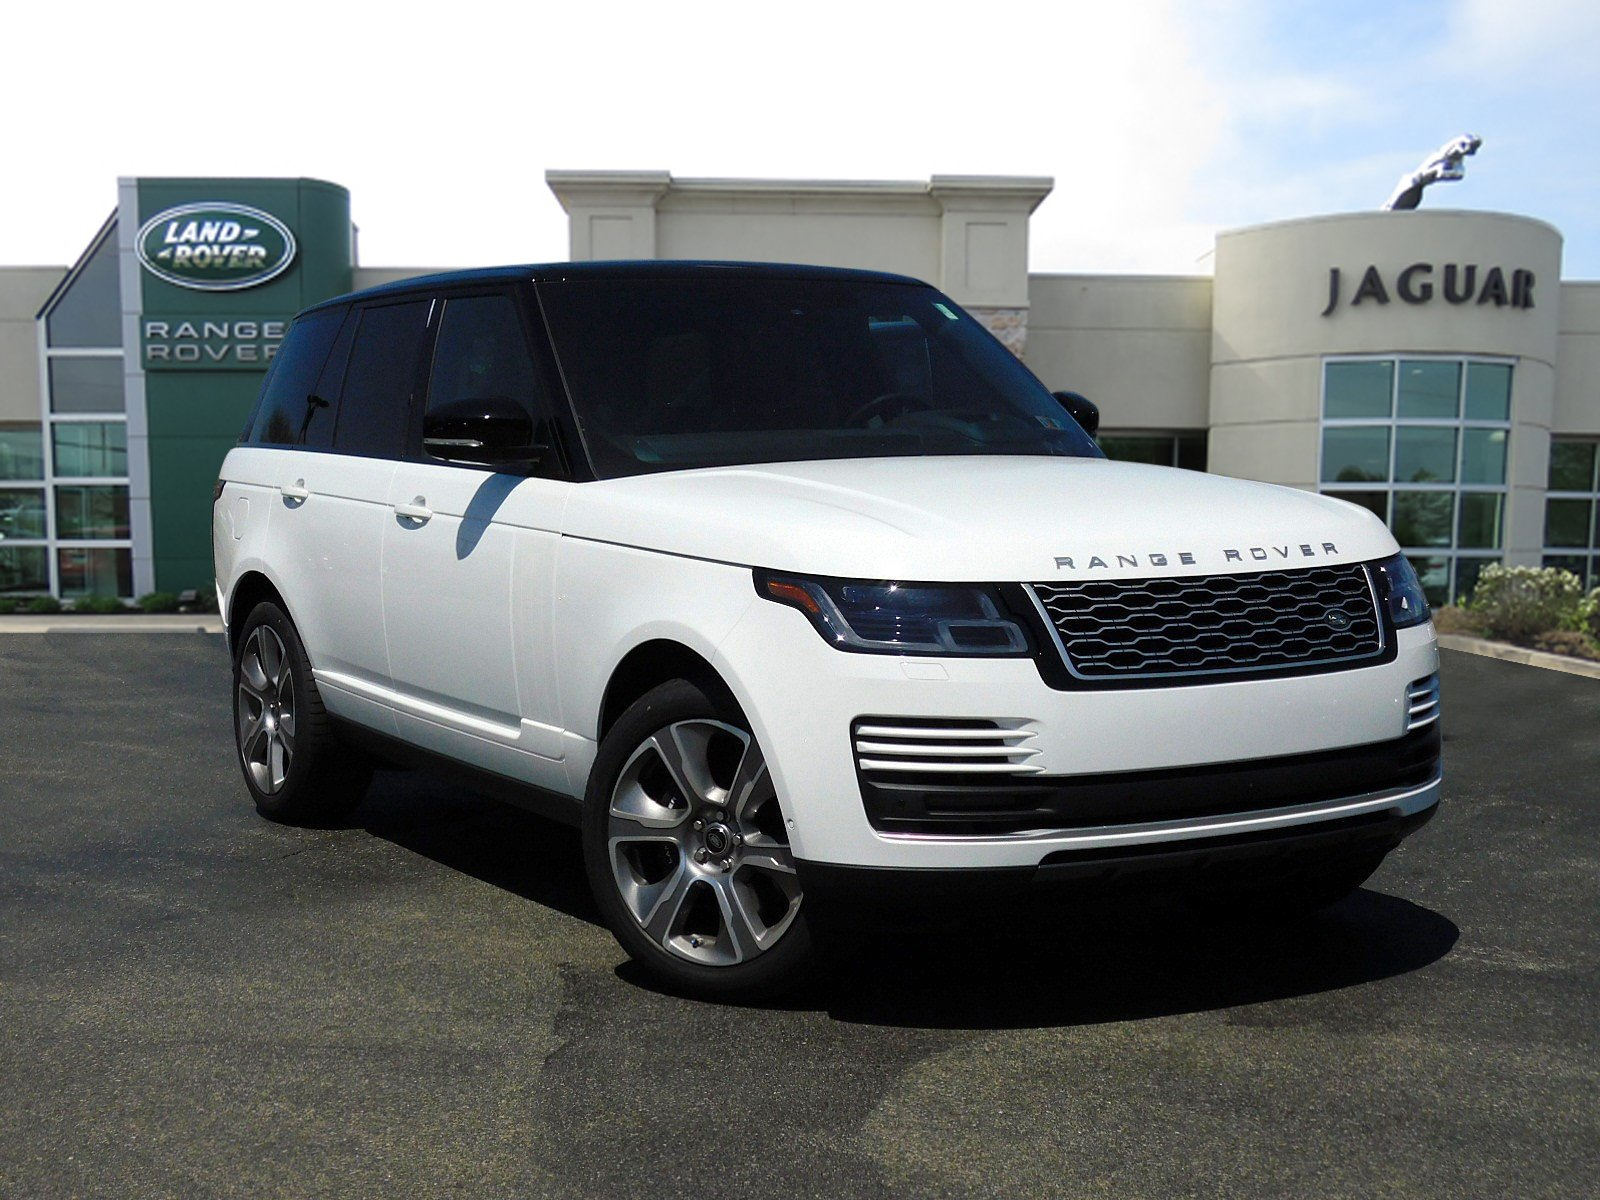 New 2018 Land Rover Range Rover 5 0L V8 Supercharged Sport Utility